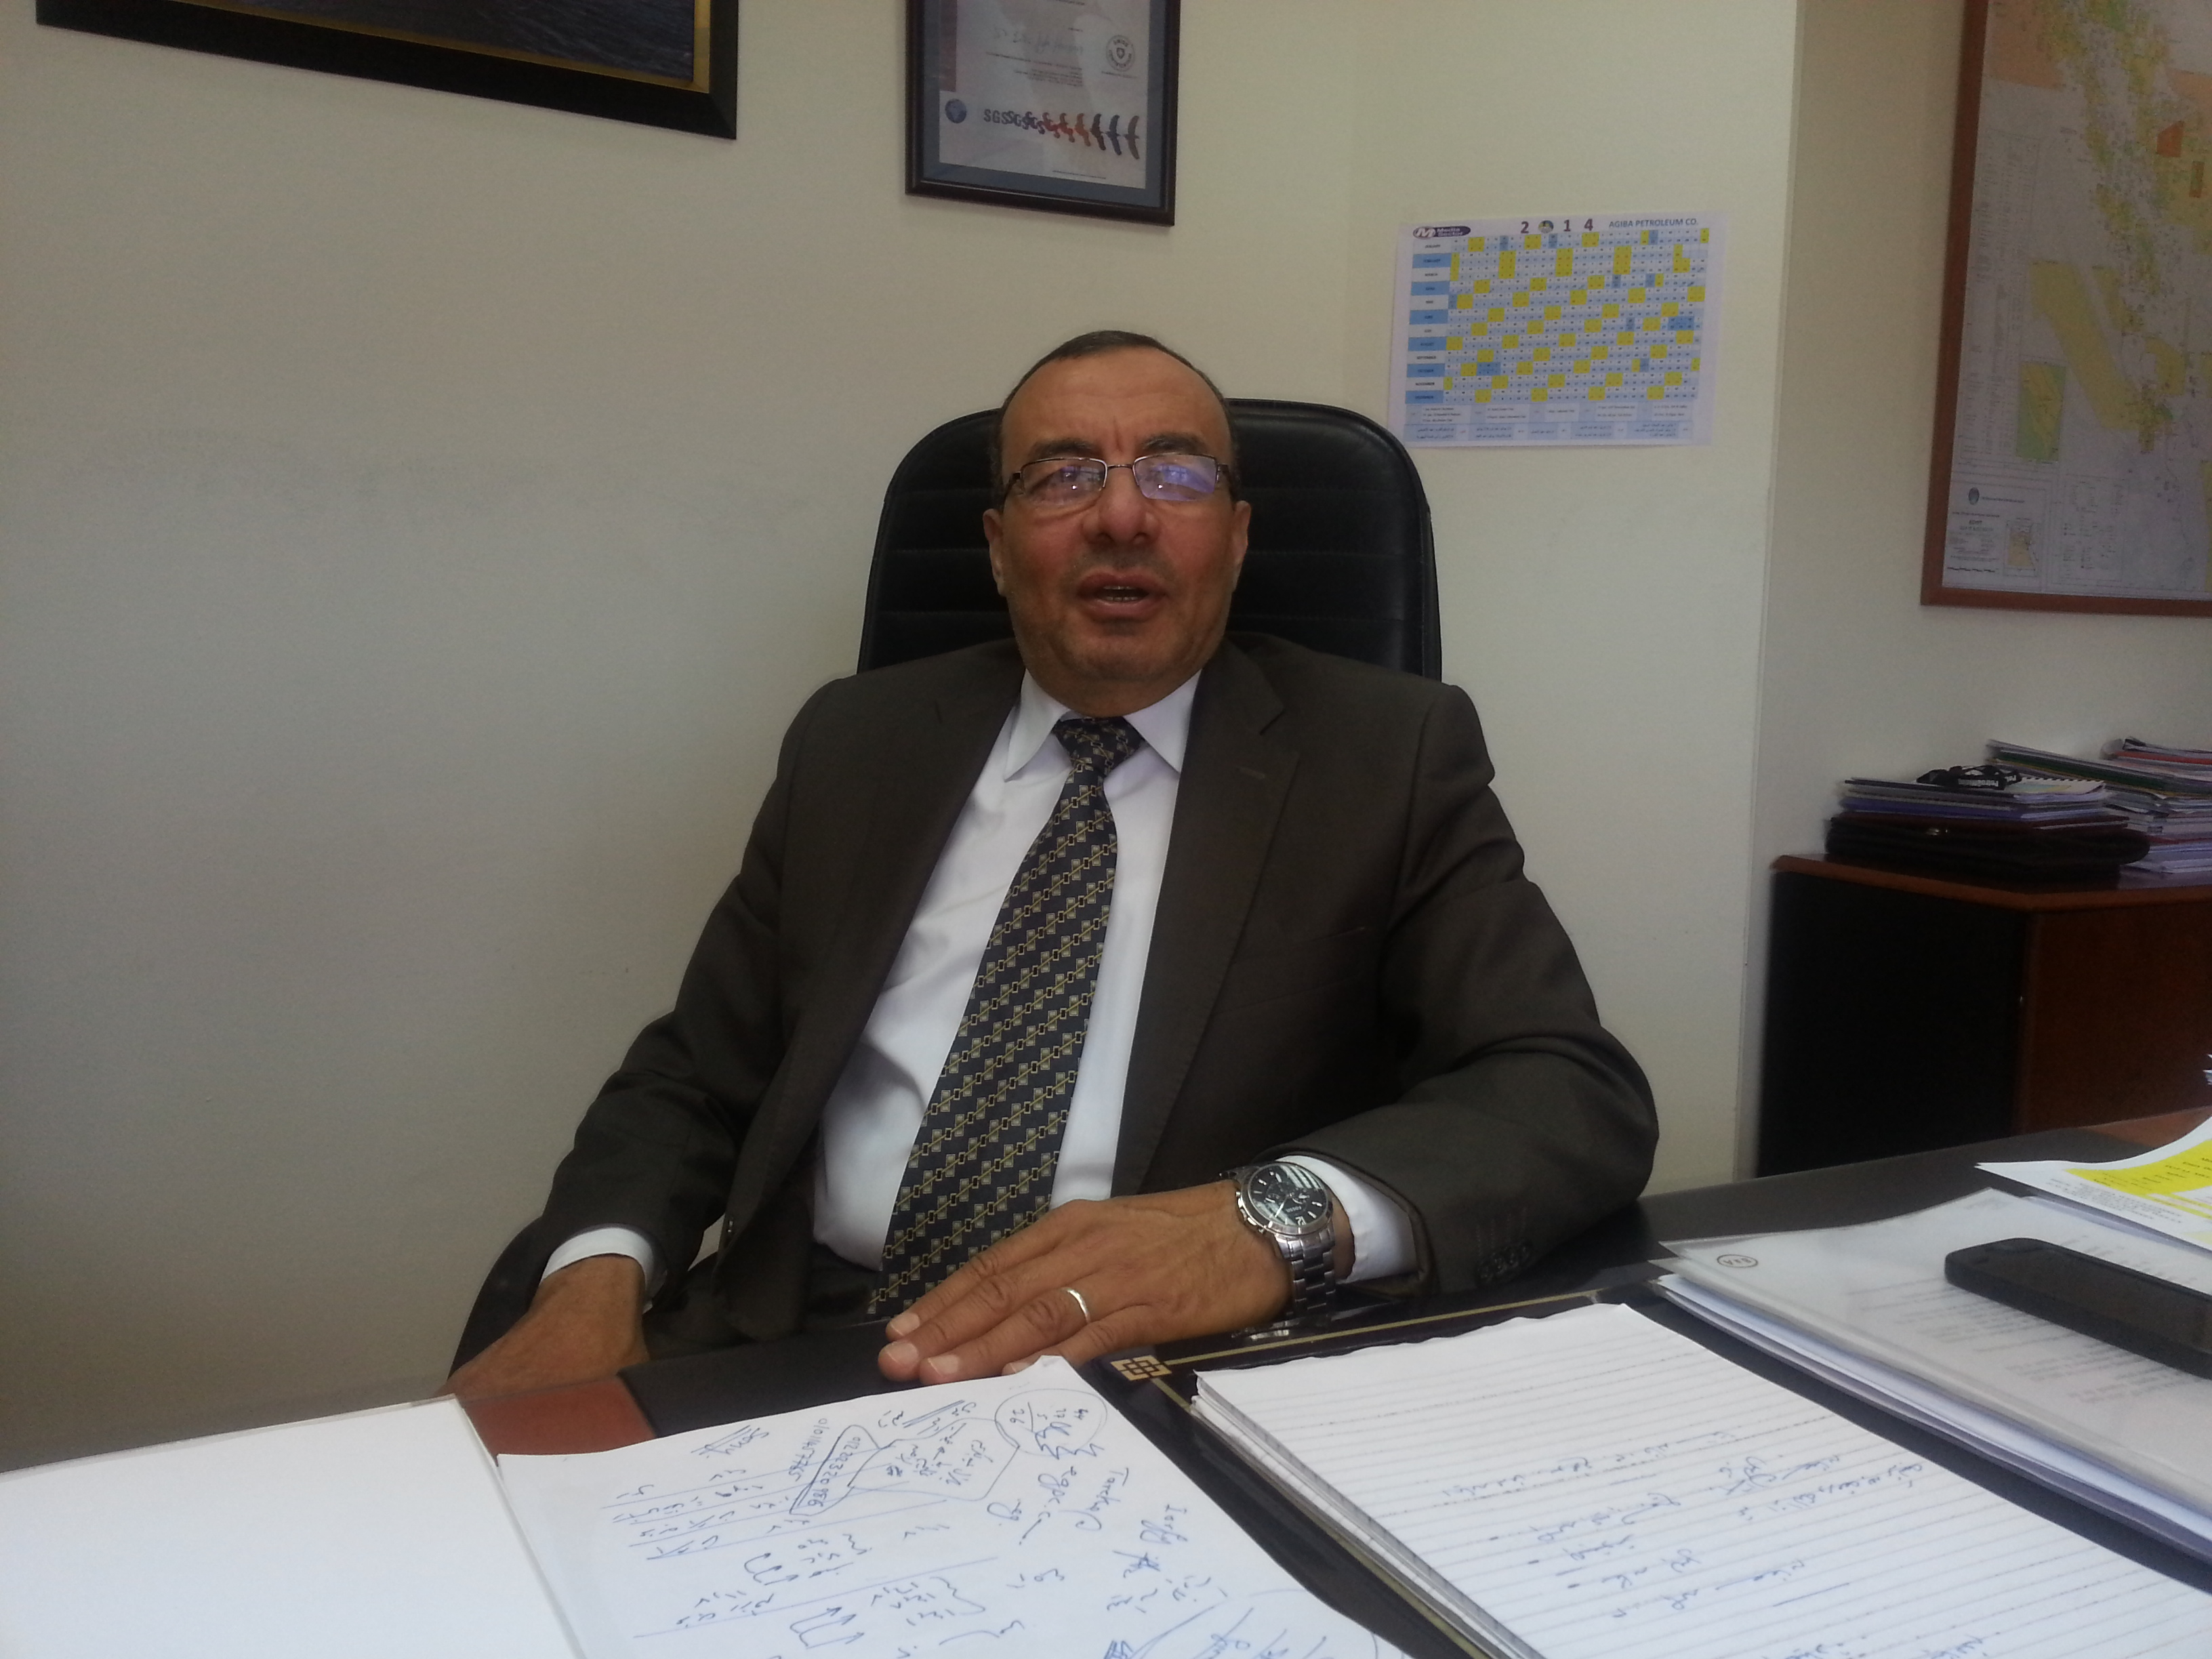 Taher Mutafa Al-Bahr, Chairman of the Board of Agiba Petroleum Company